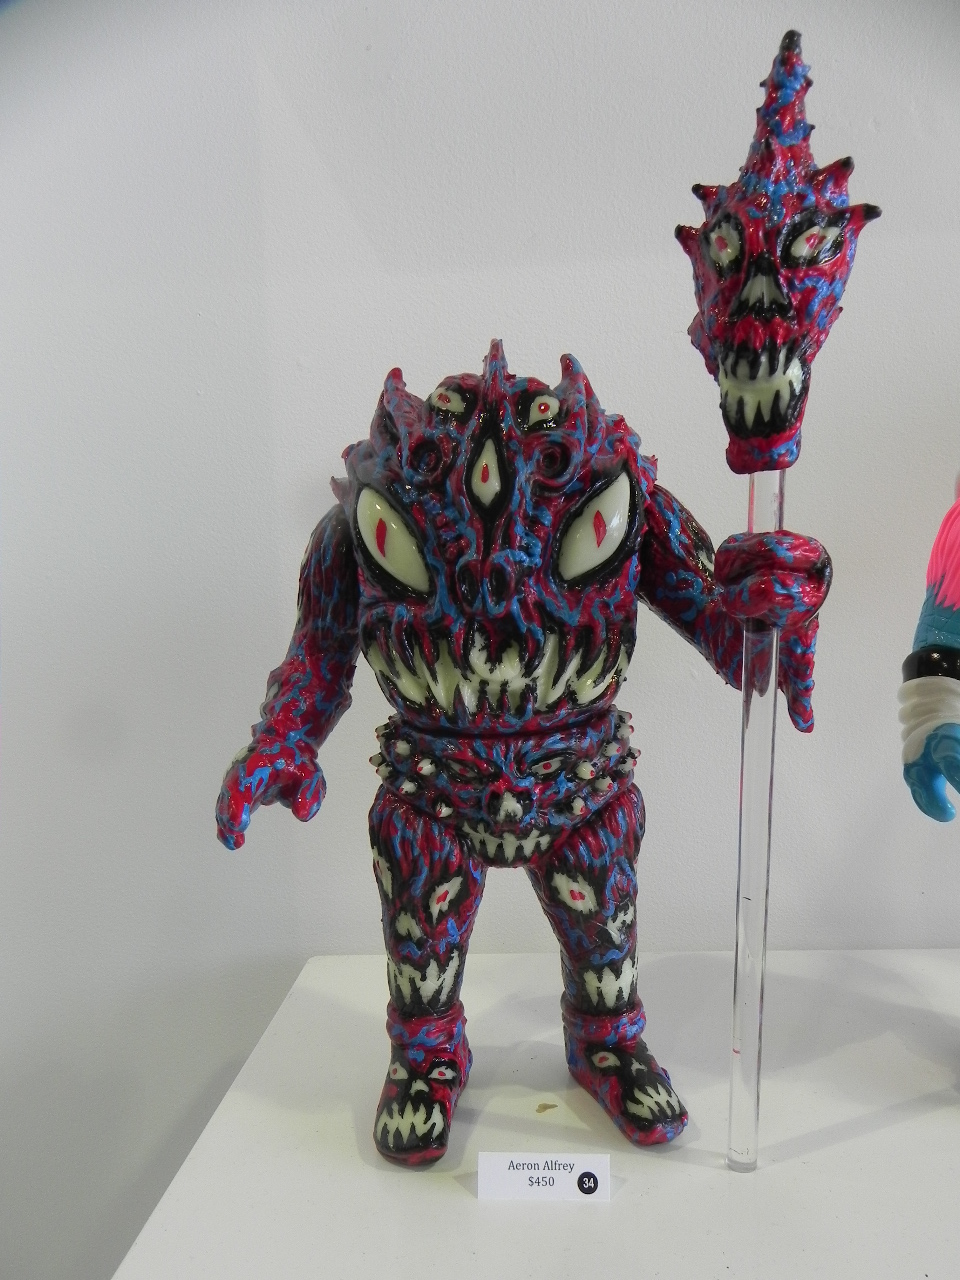 Custom Toys And Vinyl Perfection At Toy Art Gallery Huffpost